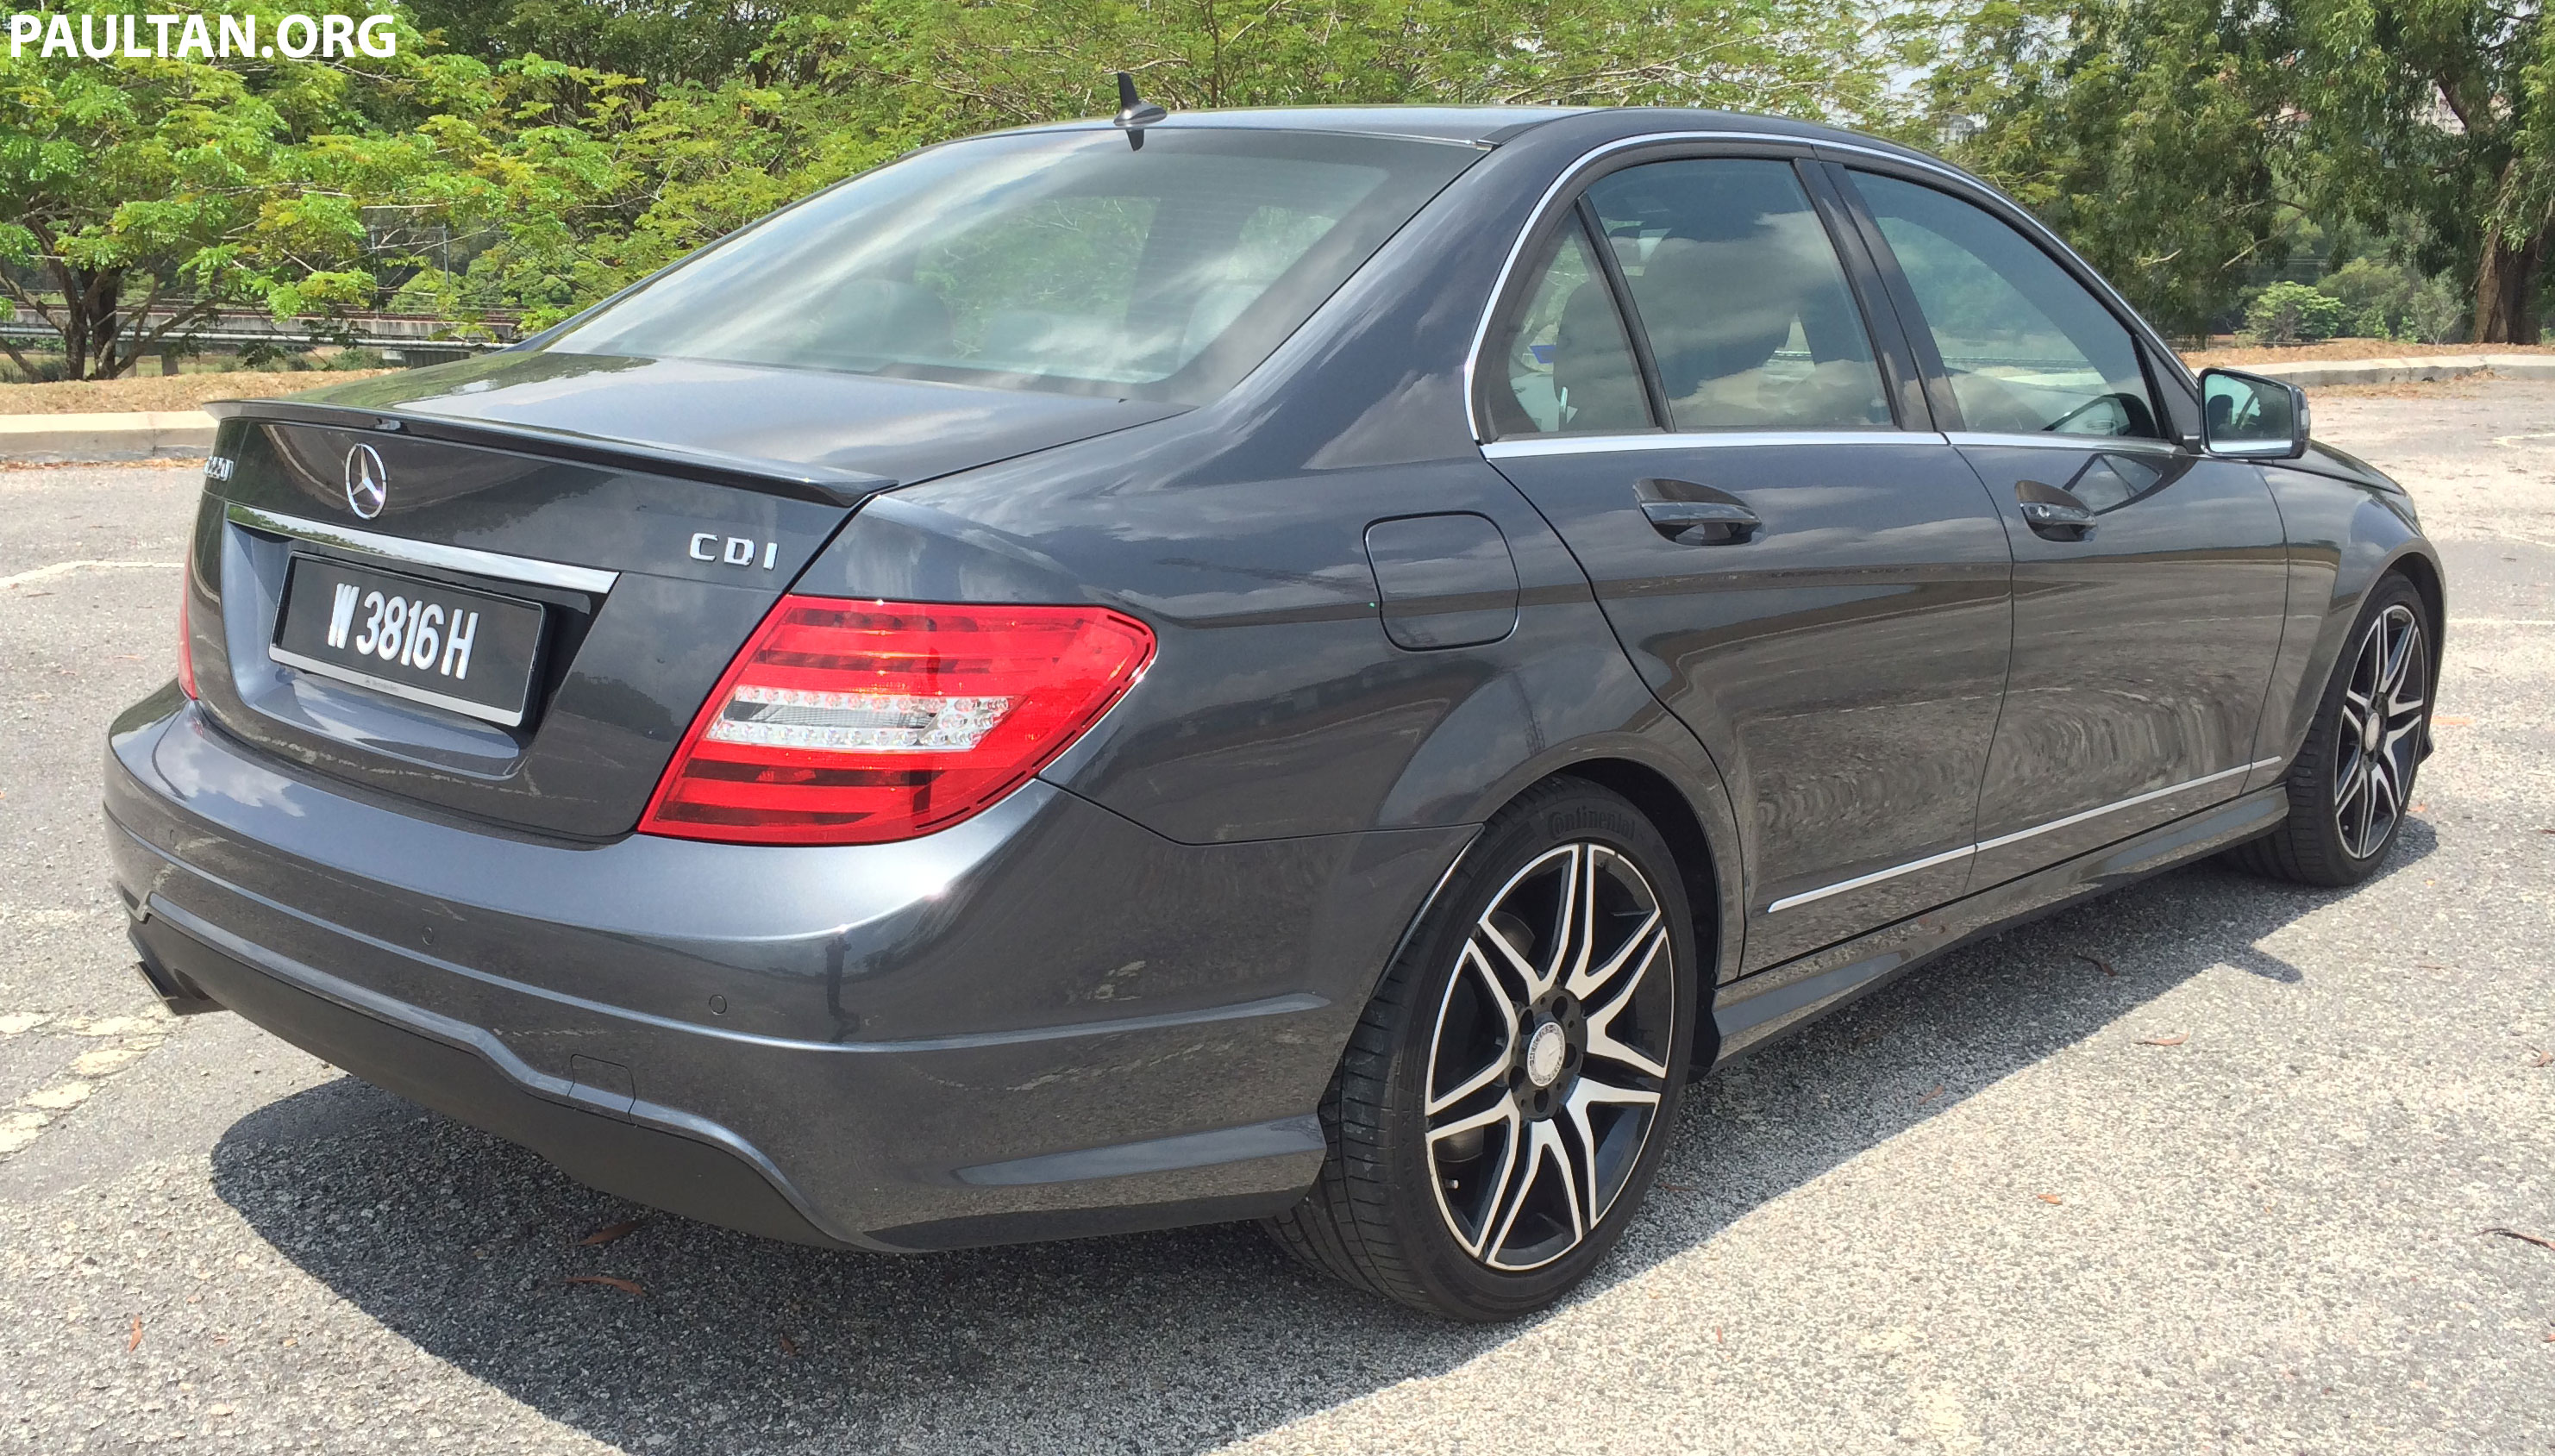 Mercedes benz c220 cdi amg sport passes diesel quality for Mercedes benz diesel cars for sale